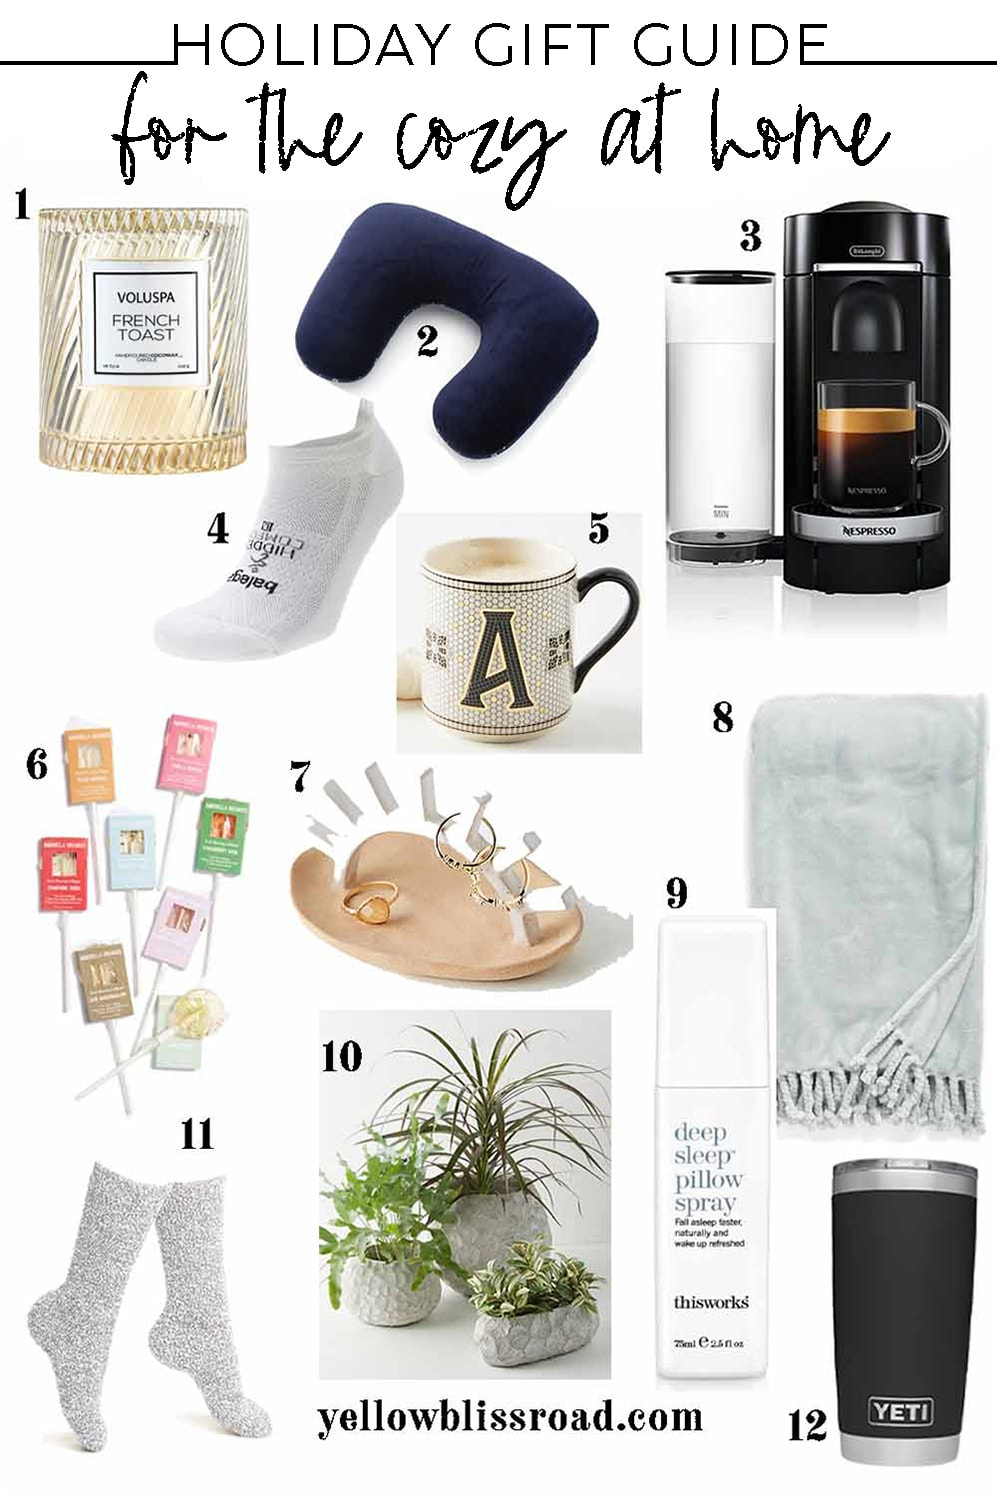 collage of gift ideas for staying cozy at home